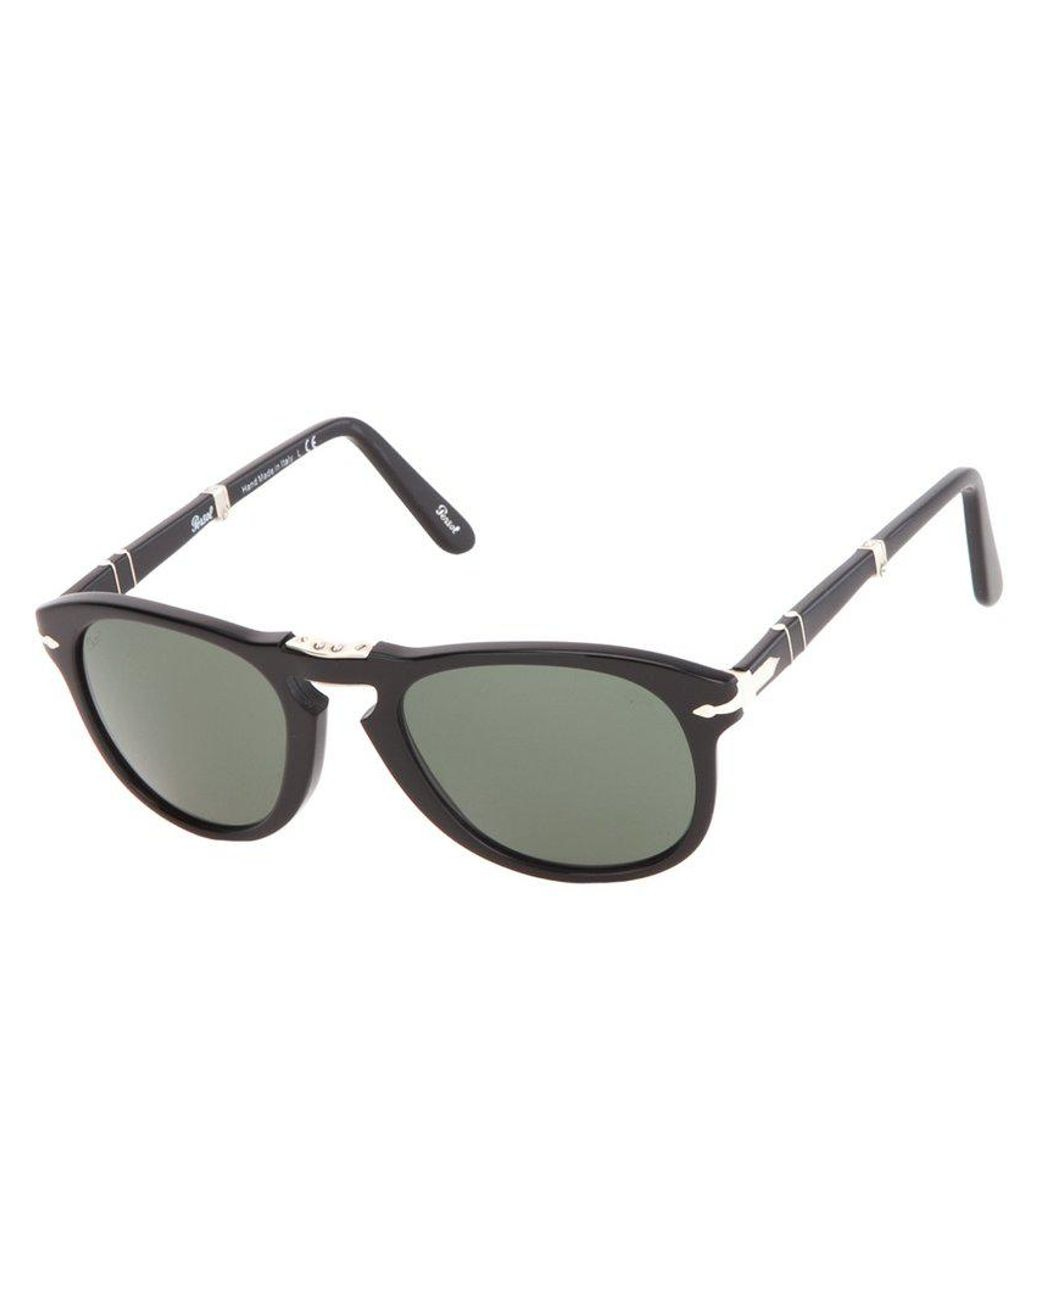 cc1c1a1b8bfab Persol Round Frame Sunglasses in Black for Men - Lyst